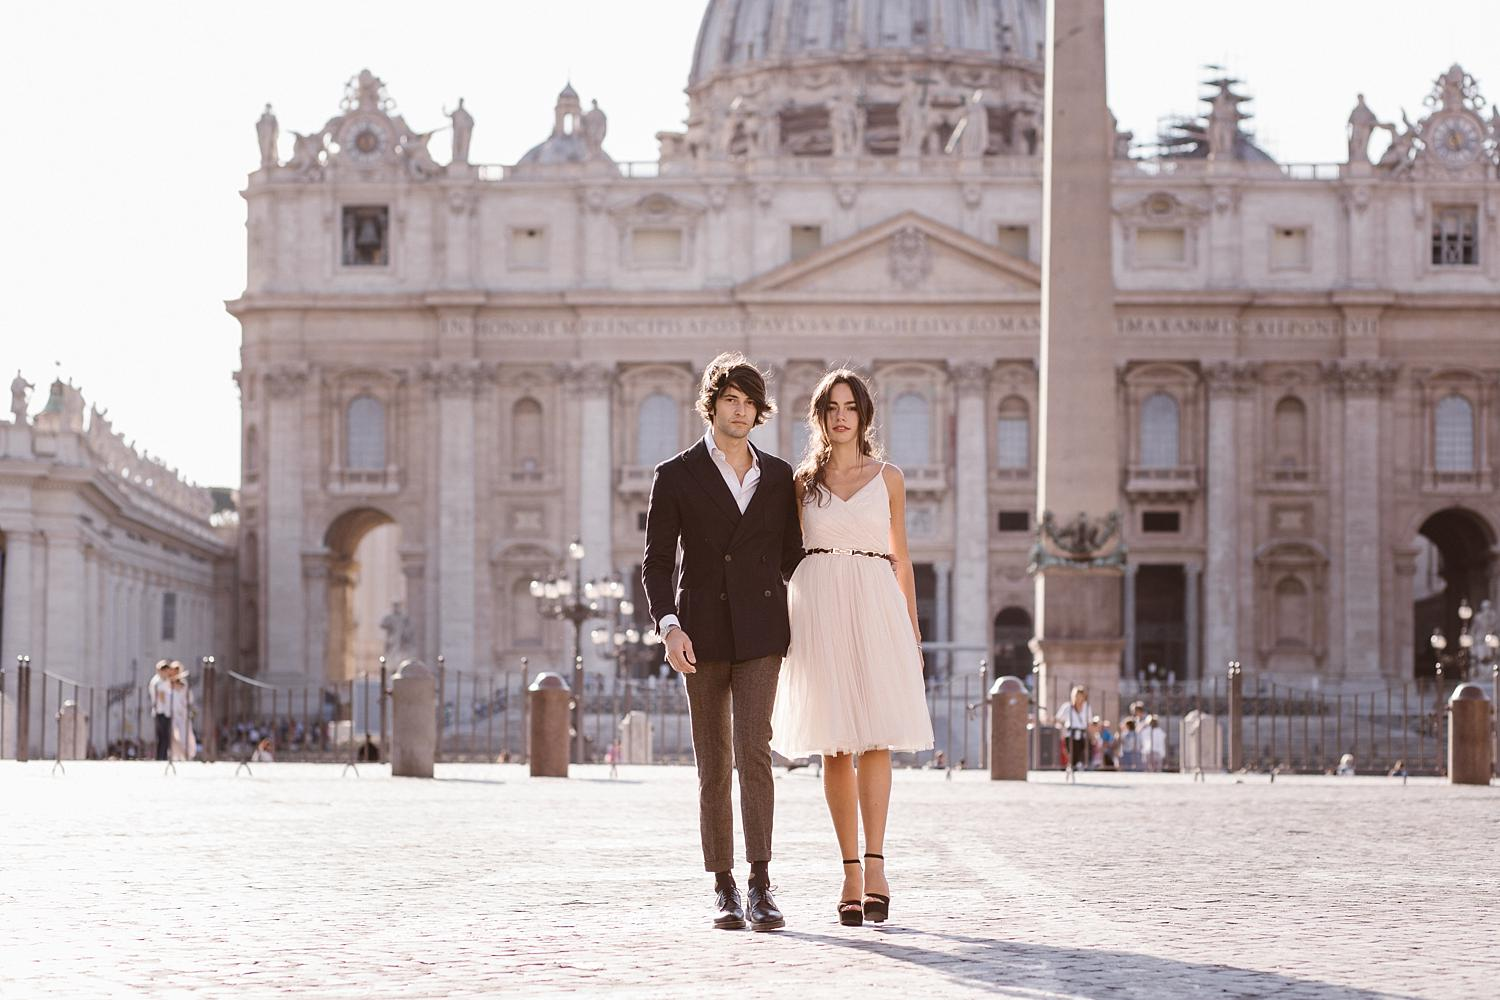 gs weddingphotographer rome 10 - Giulia & Simone - Elegant Couple Shooting in Rome